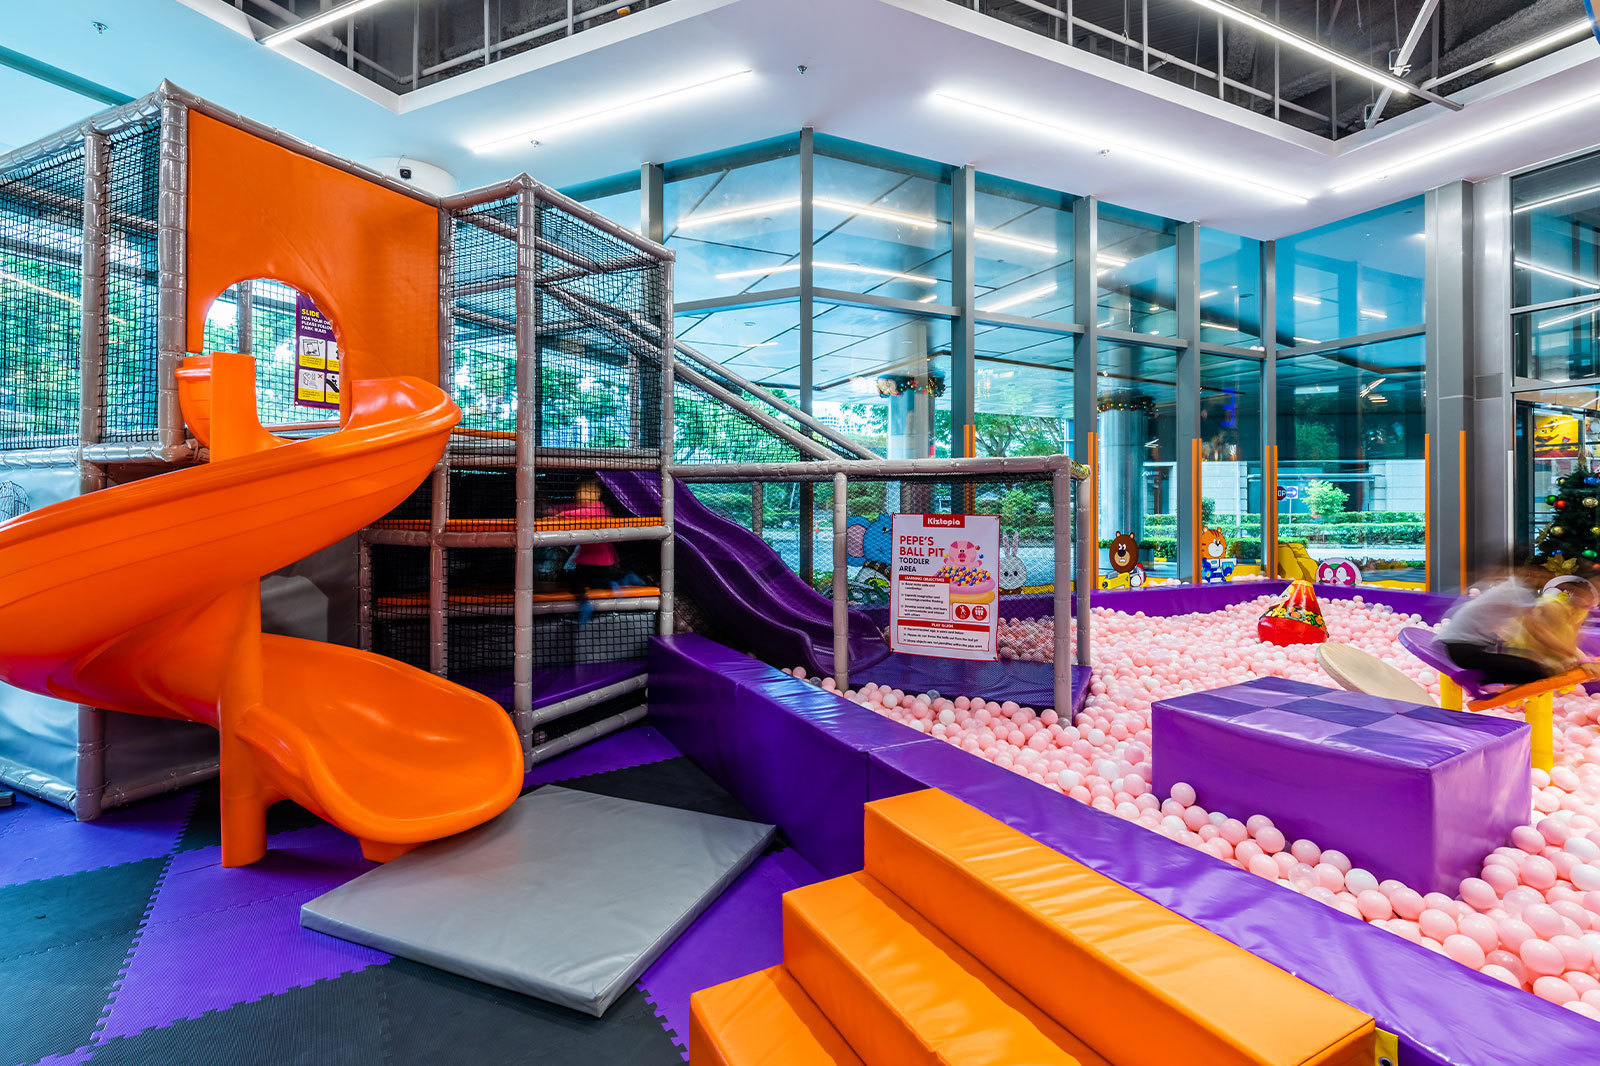 The best indoor playgrounds for babies and toddlers in Singapore